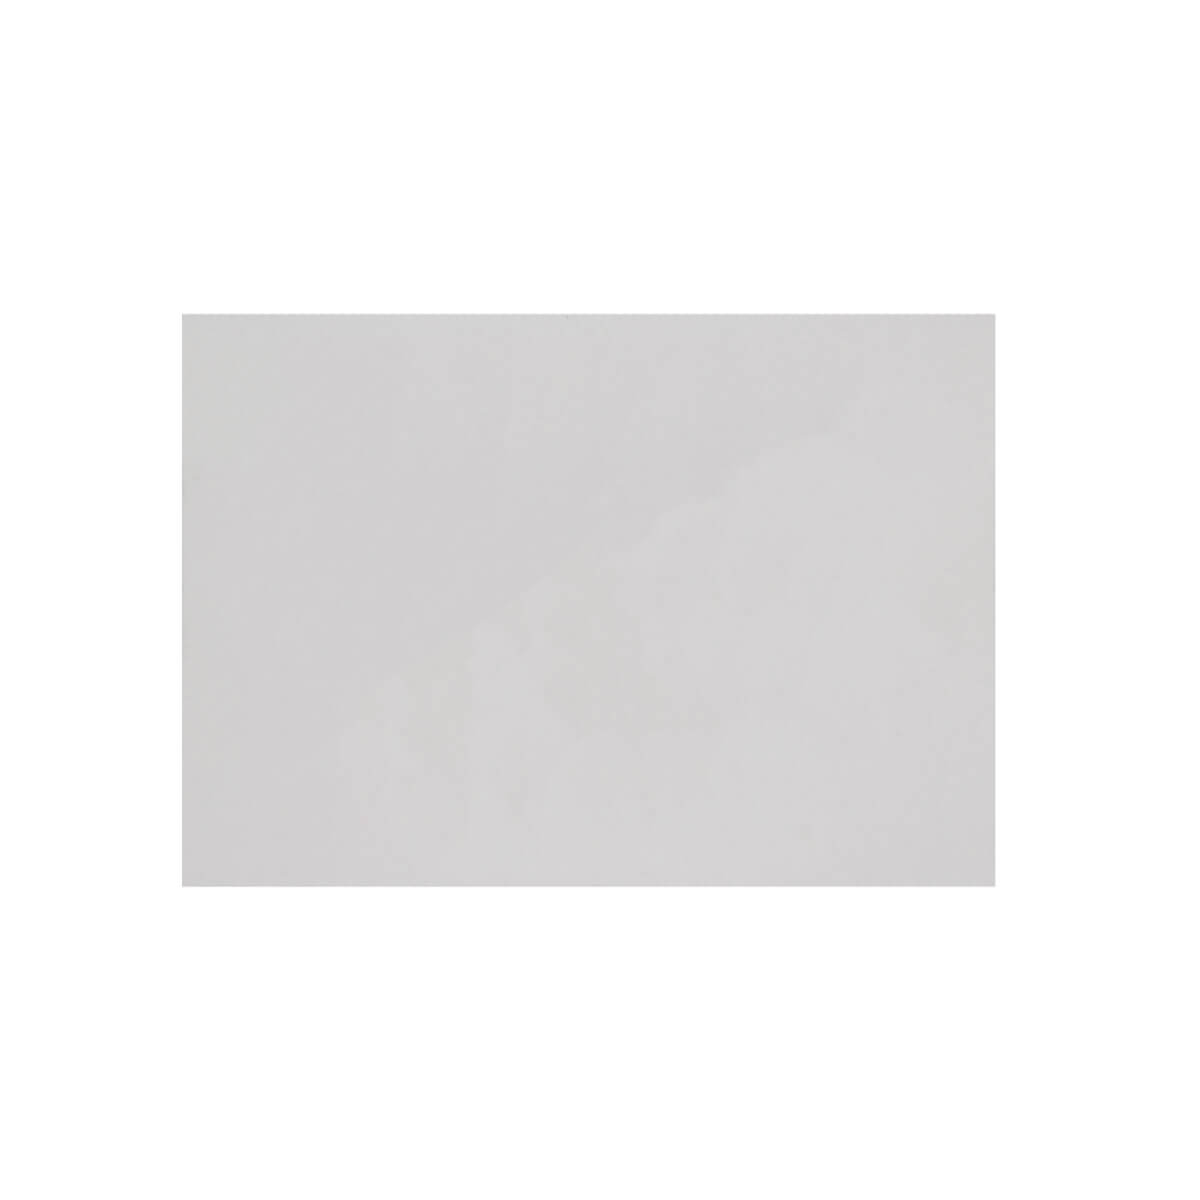 WHITE 70 x 100mm GIFT TAG ENVELOPE 130GSM (i2)